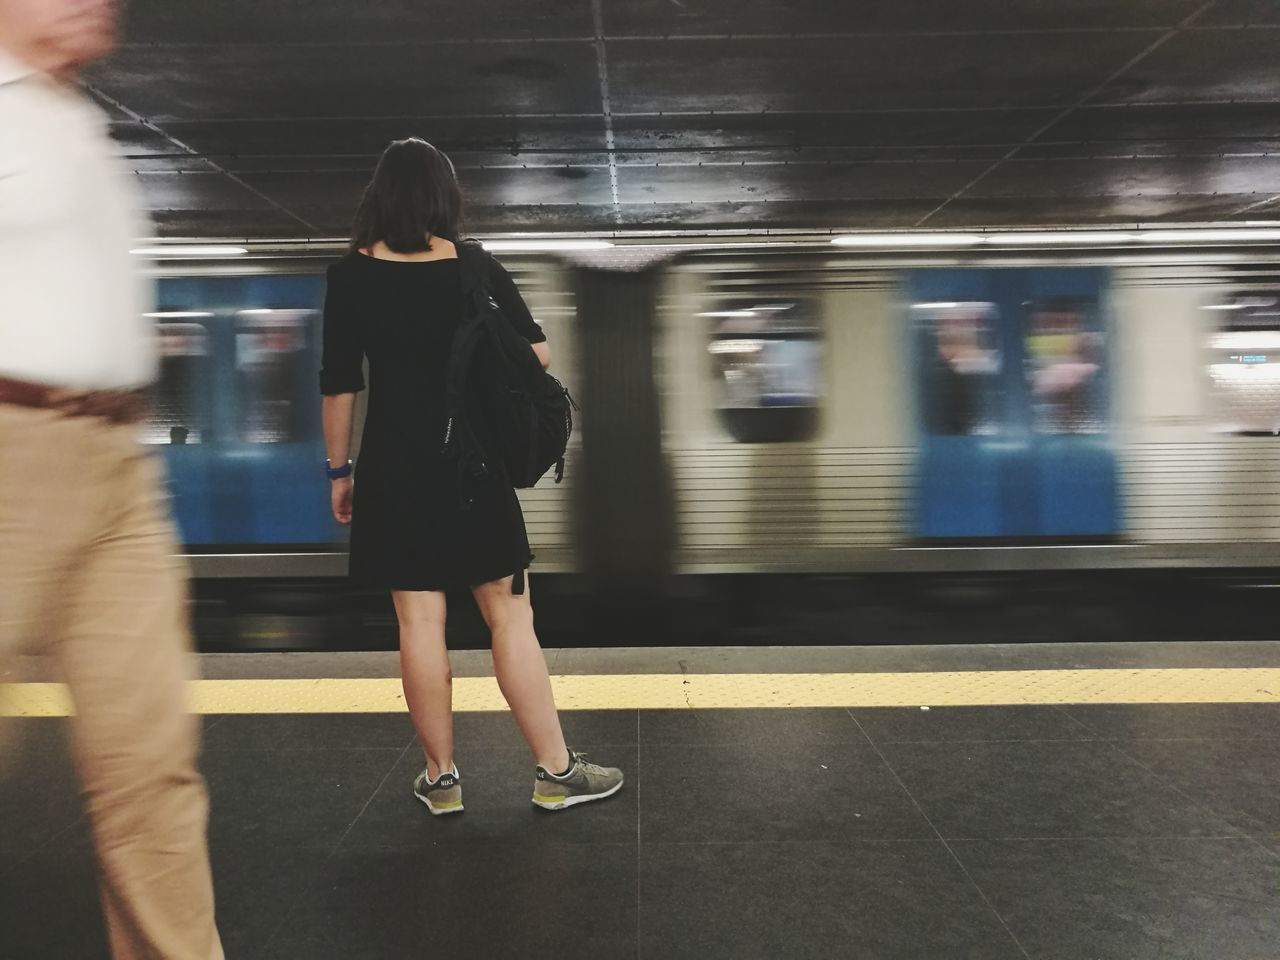 blurred motion, motion, transportation, speed, real people, train - vehicle, mode of transport, casual clothing, long exposure, public transportation, railroad station platform, railroad station, full length, two people, lifestyles, women, indoors, day, people